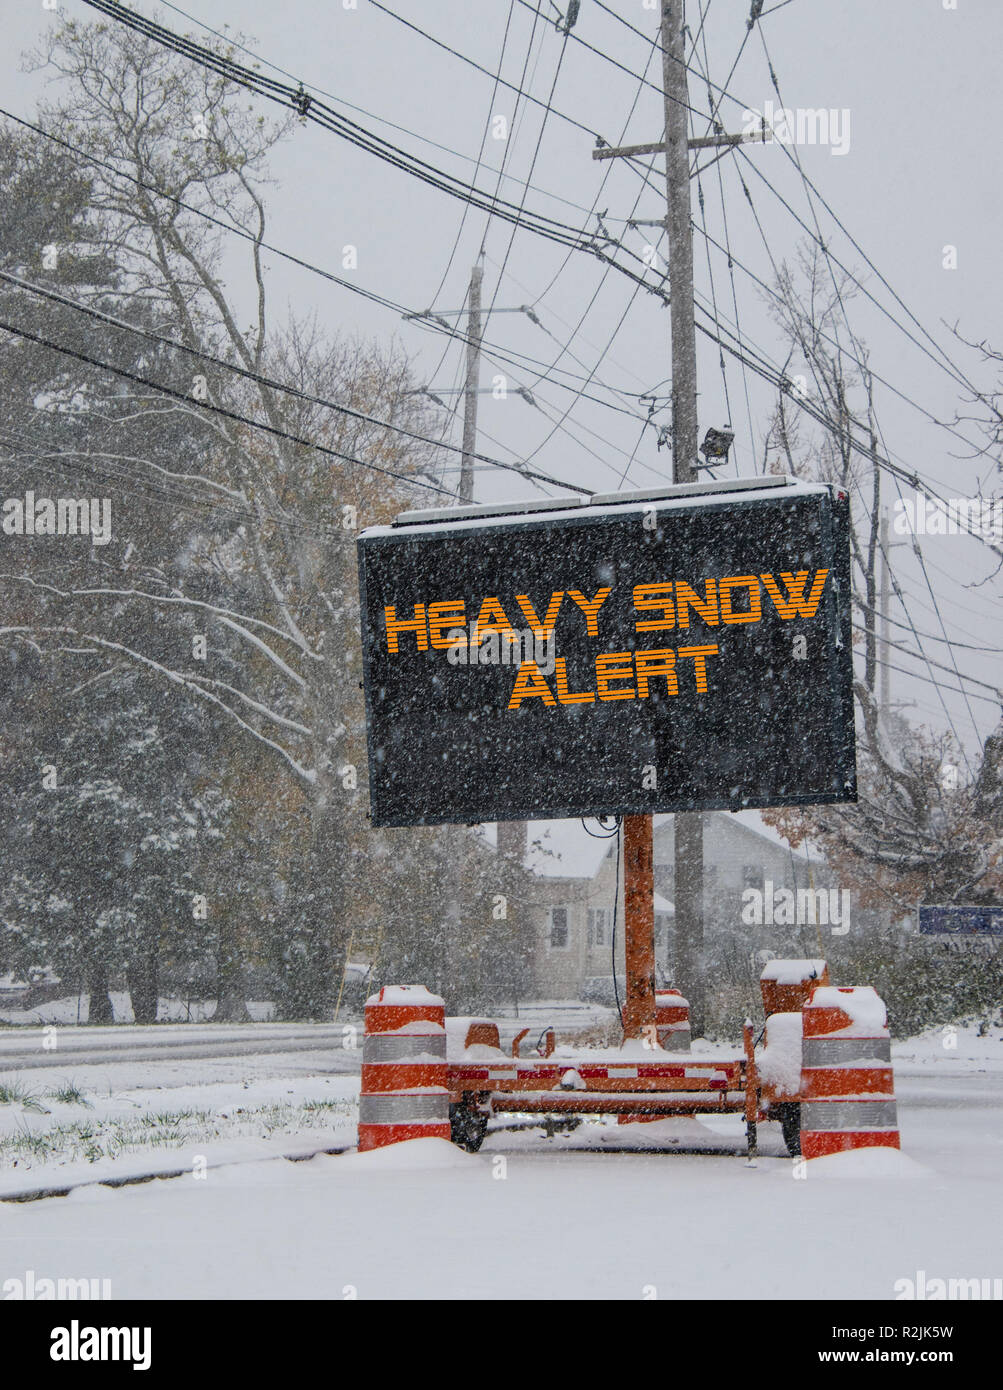 Electric road traffic mobile sign by the side of a snow covered road with snow falling warning of heavy snow alert - Stock Image